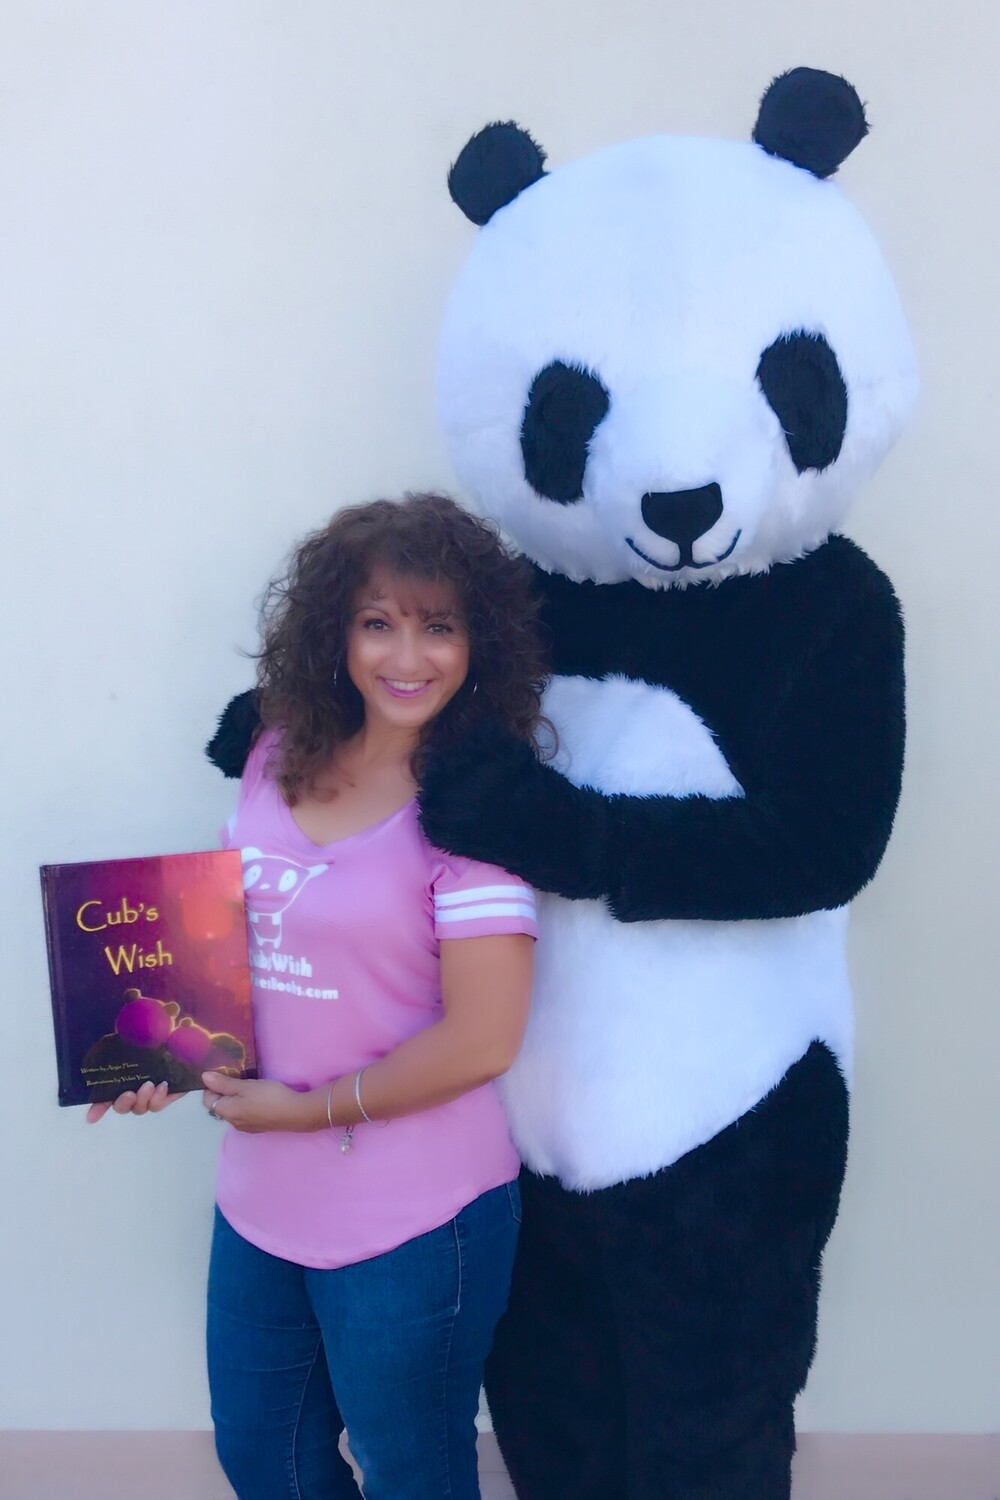 Cub's Wish by Angie Flores